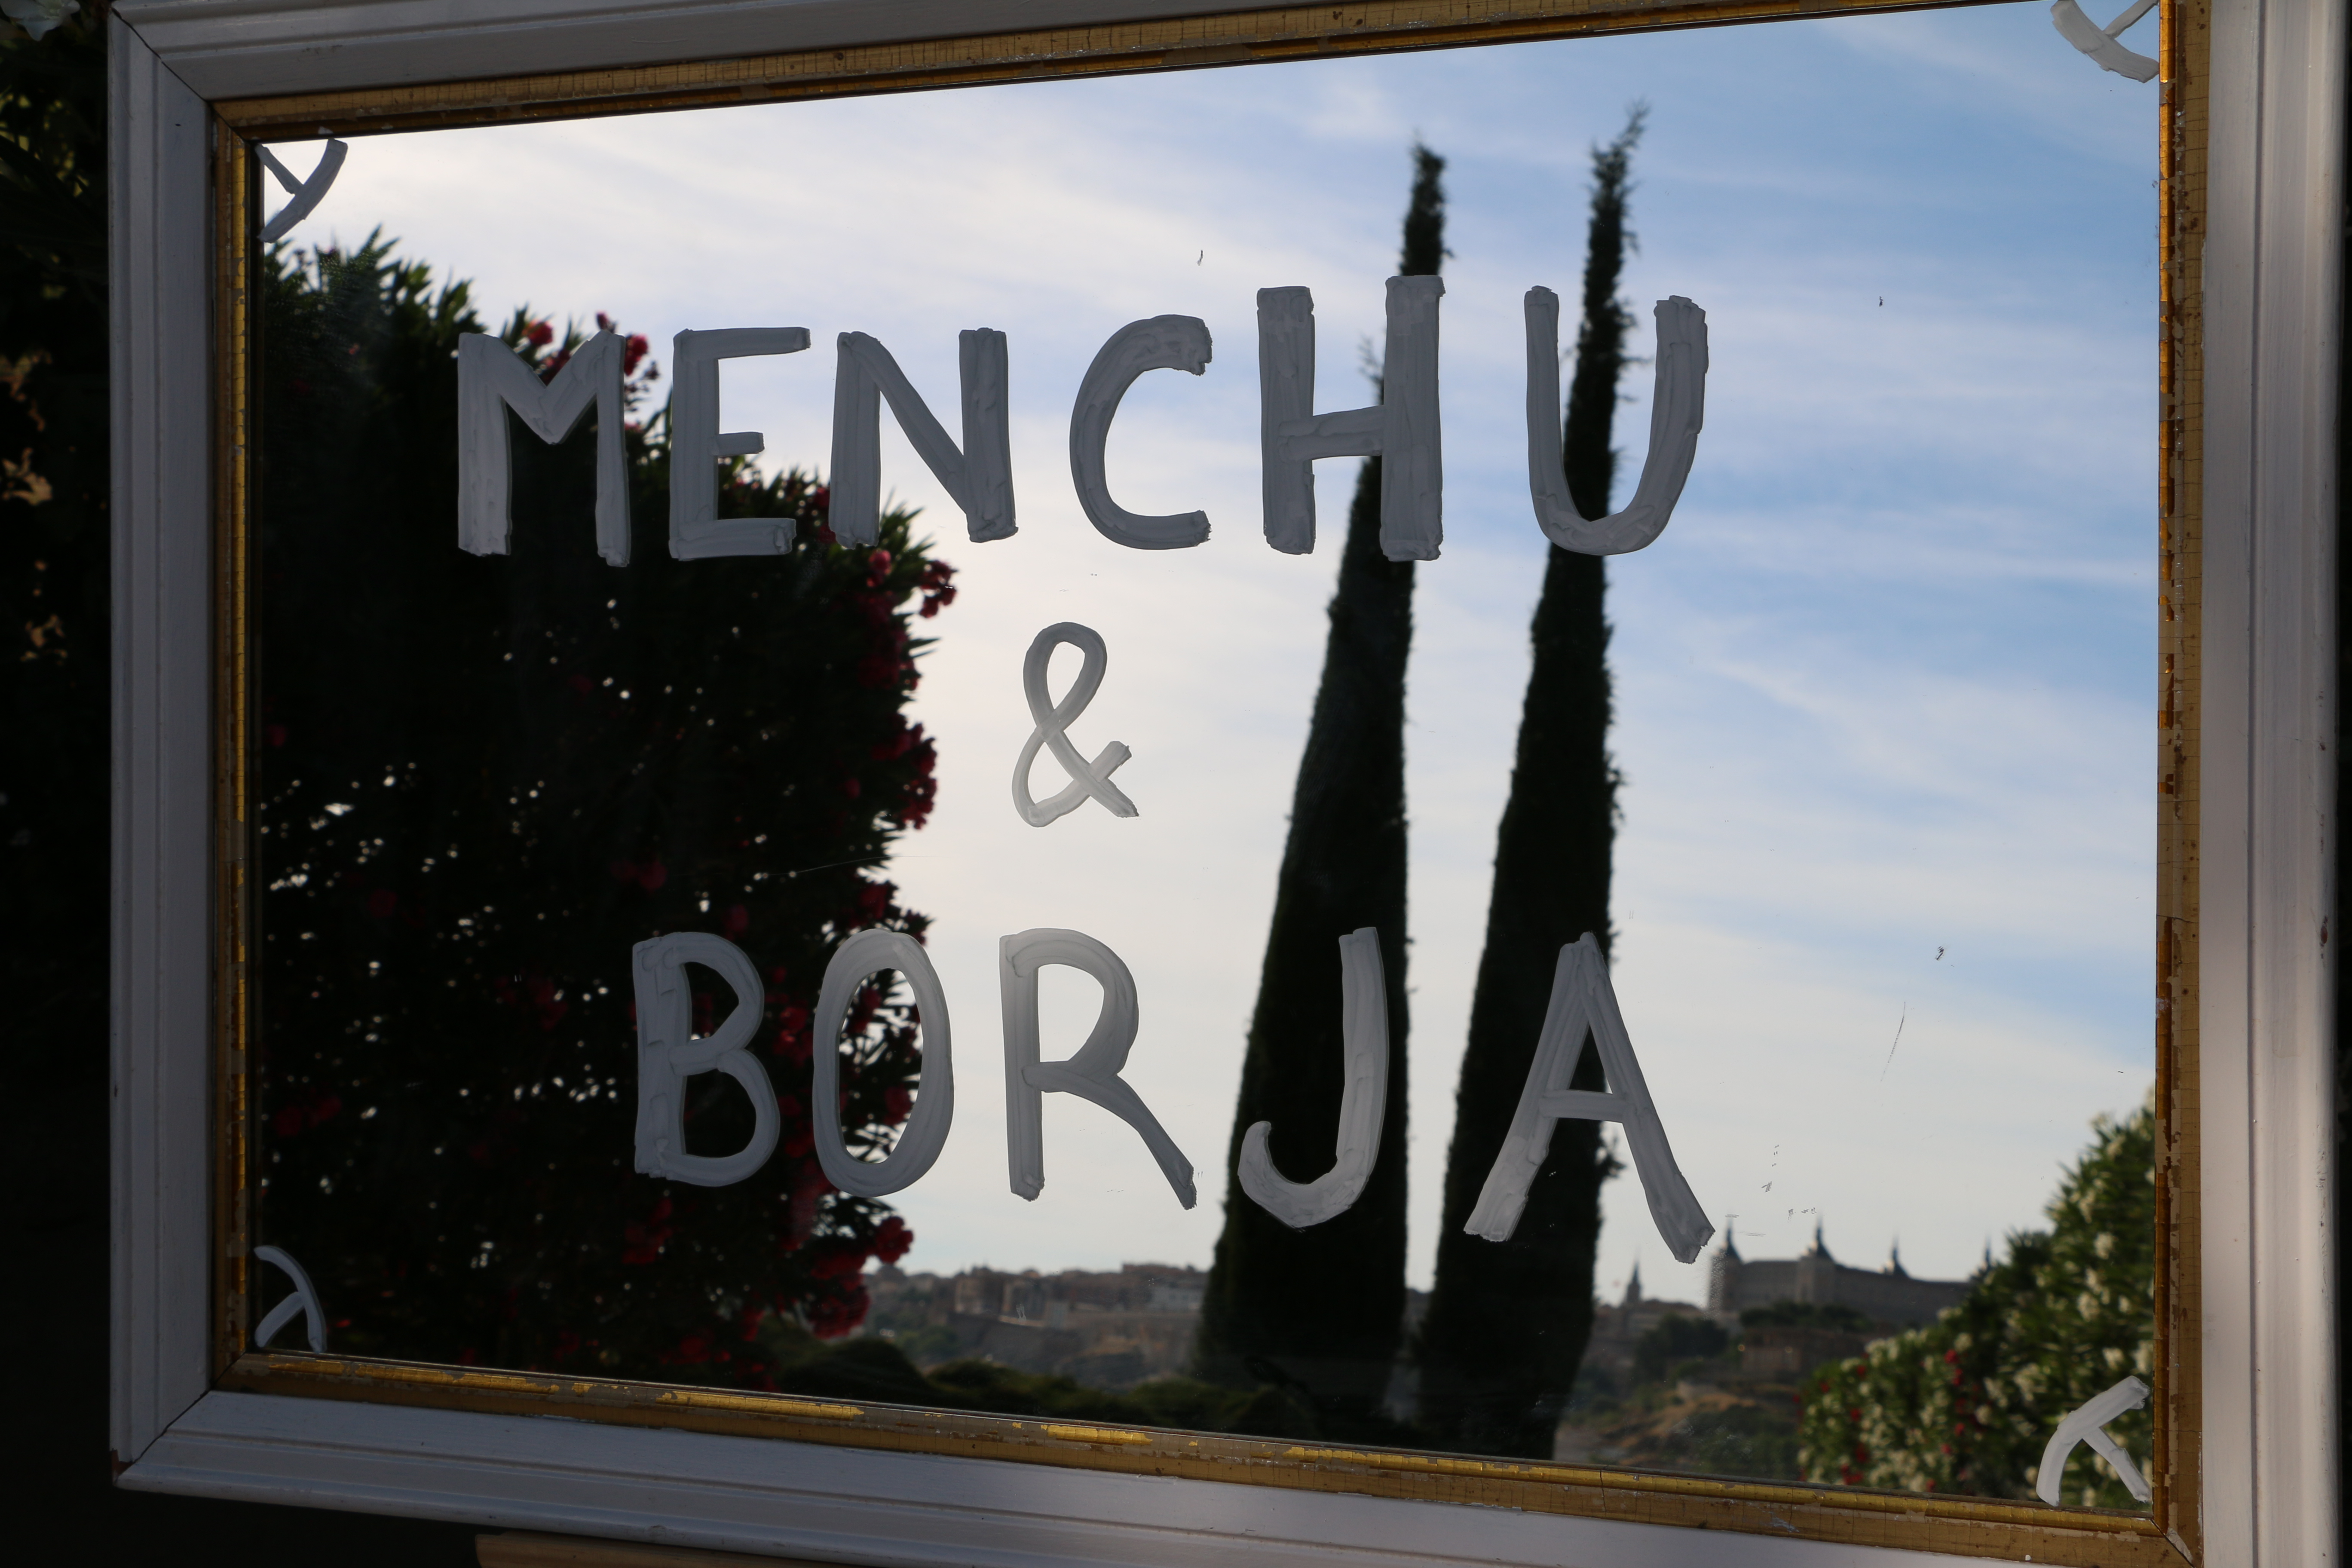 Menchu and borja wedding